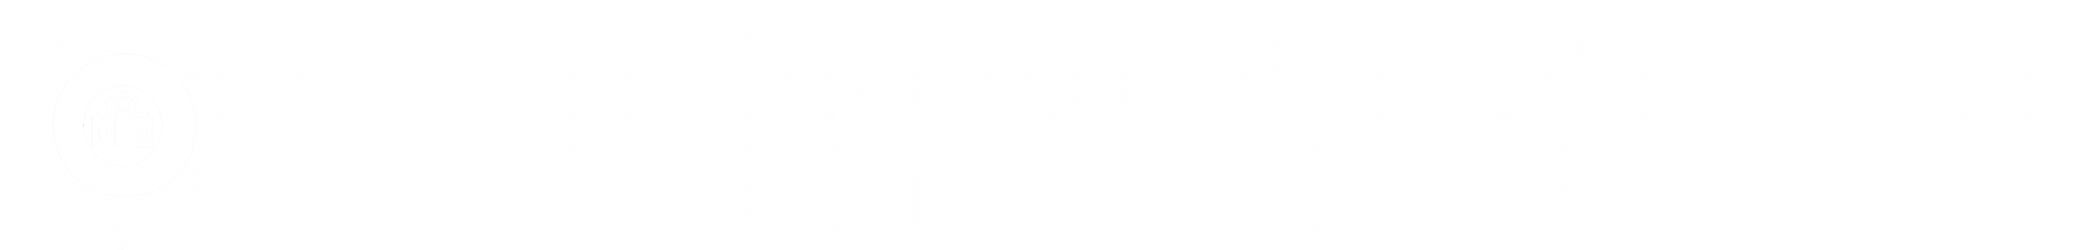 Guisborough & District Motorcycle Club Ltd